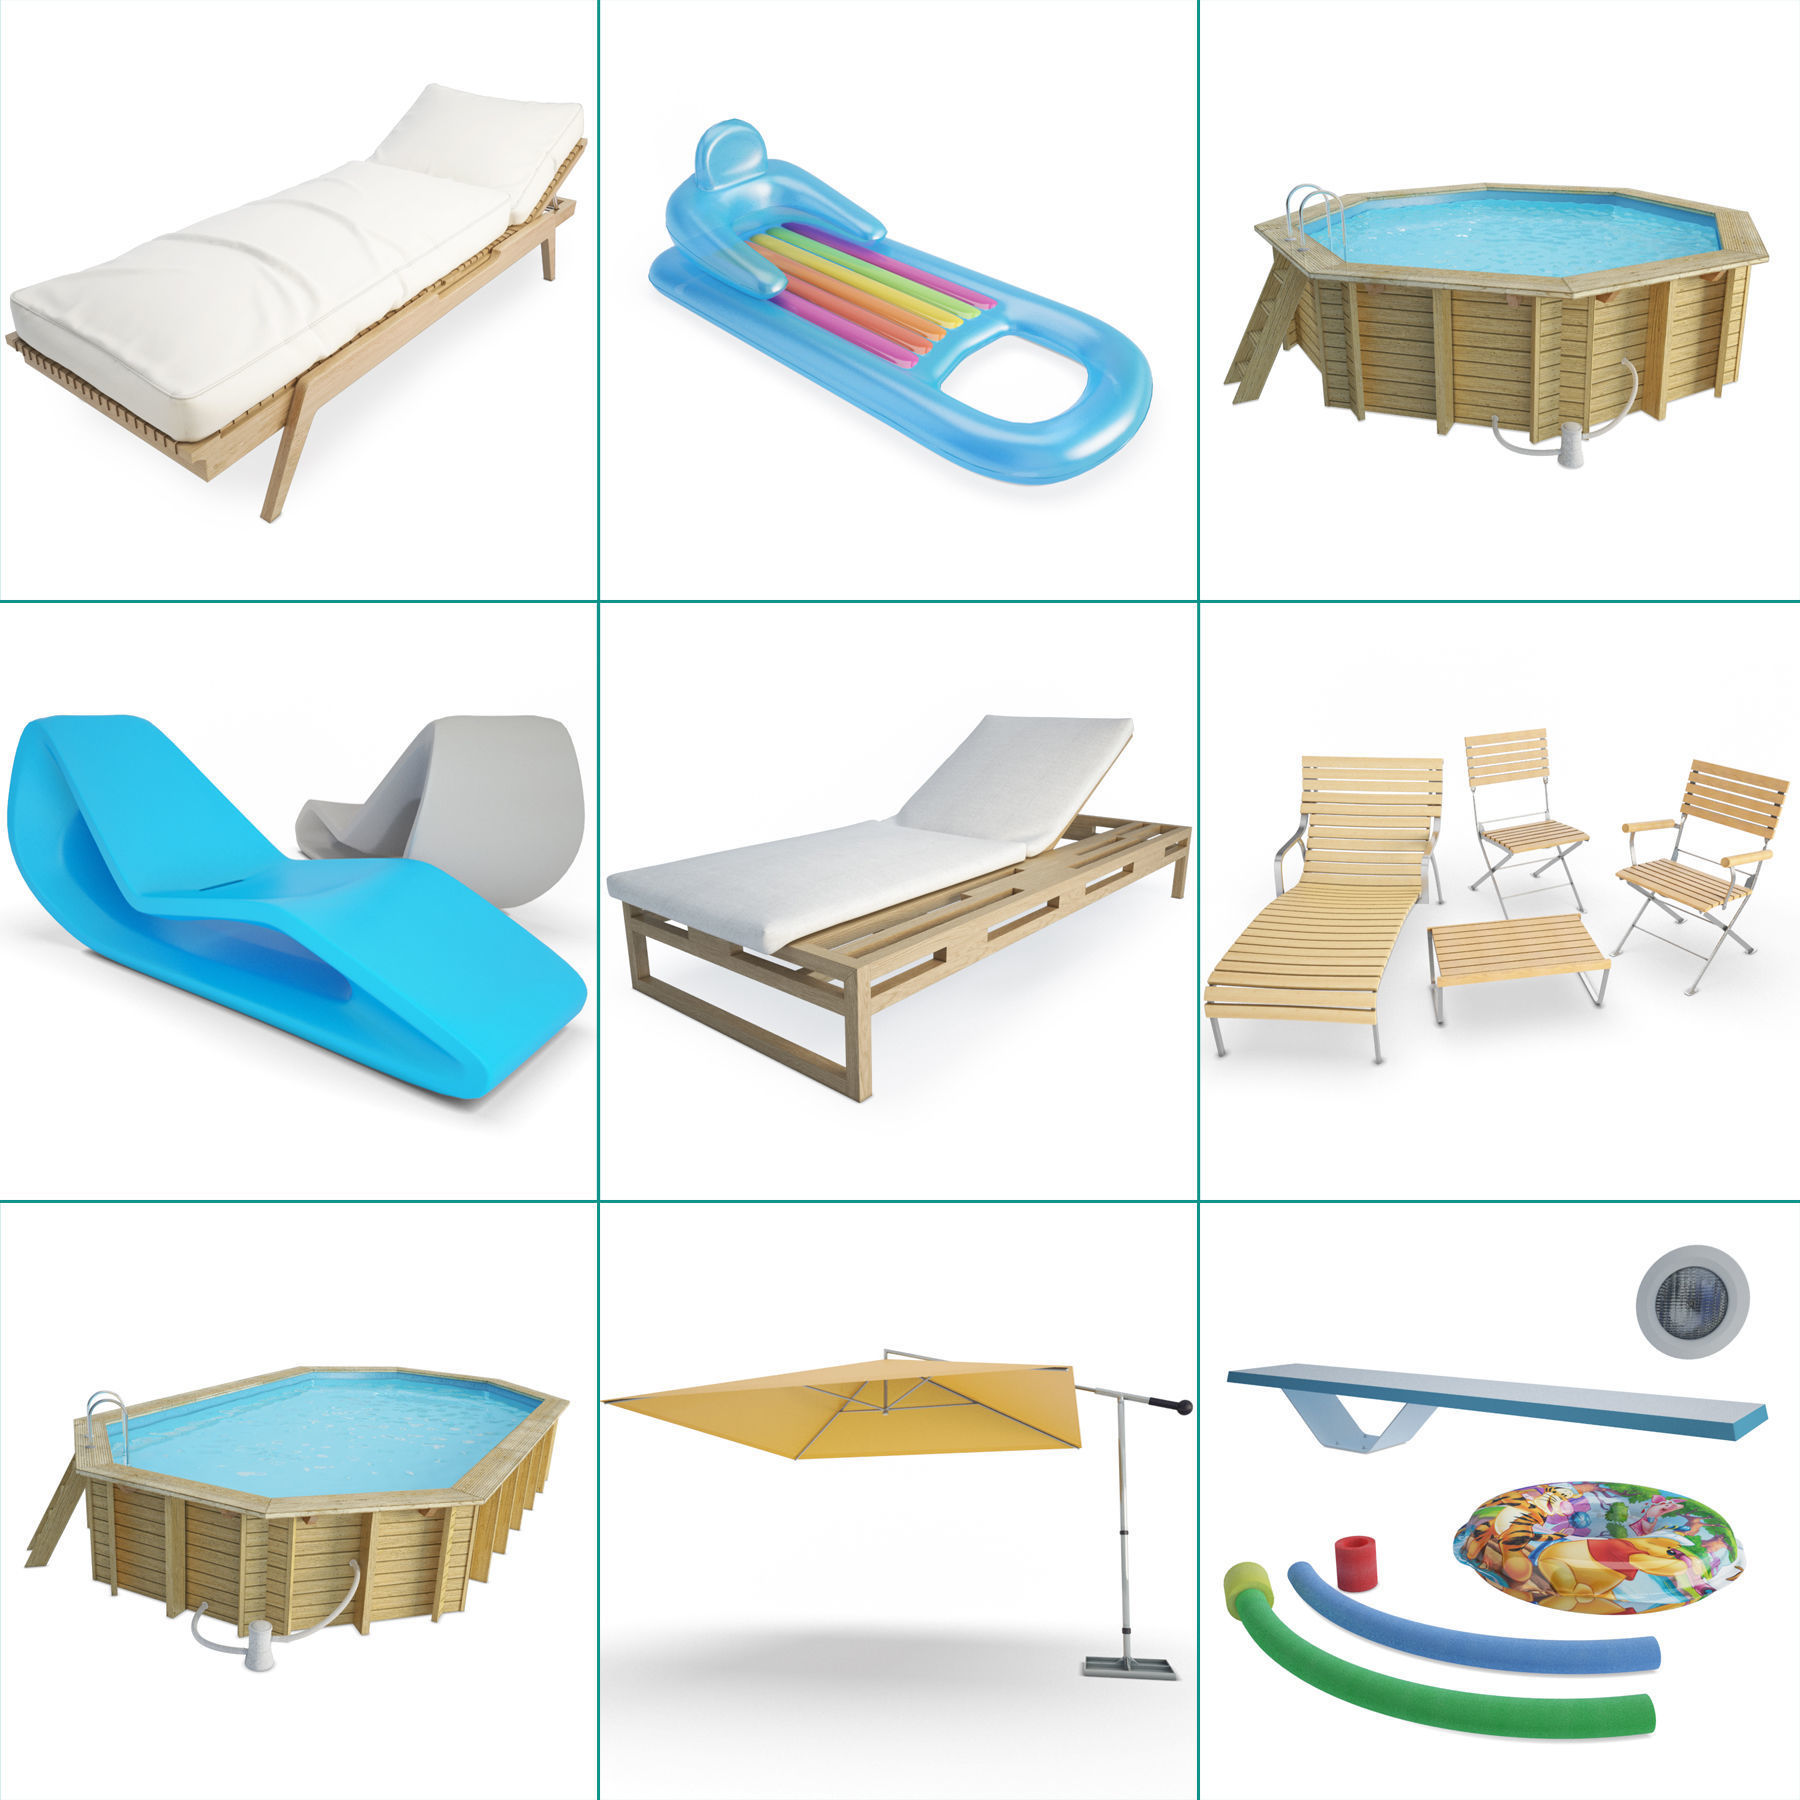 Swimming Pool and Accessories Collection